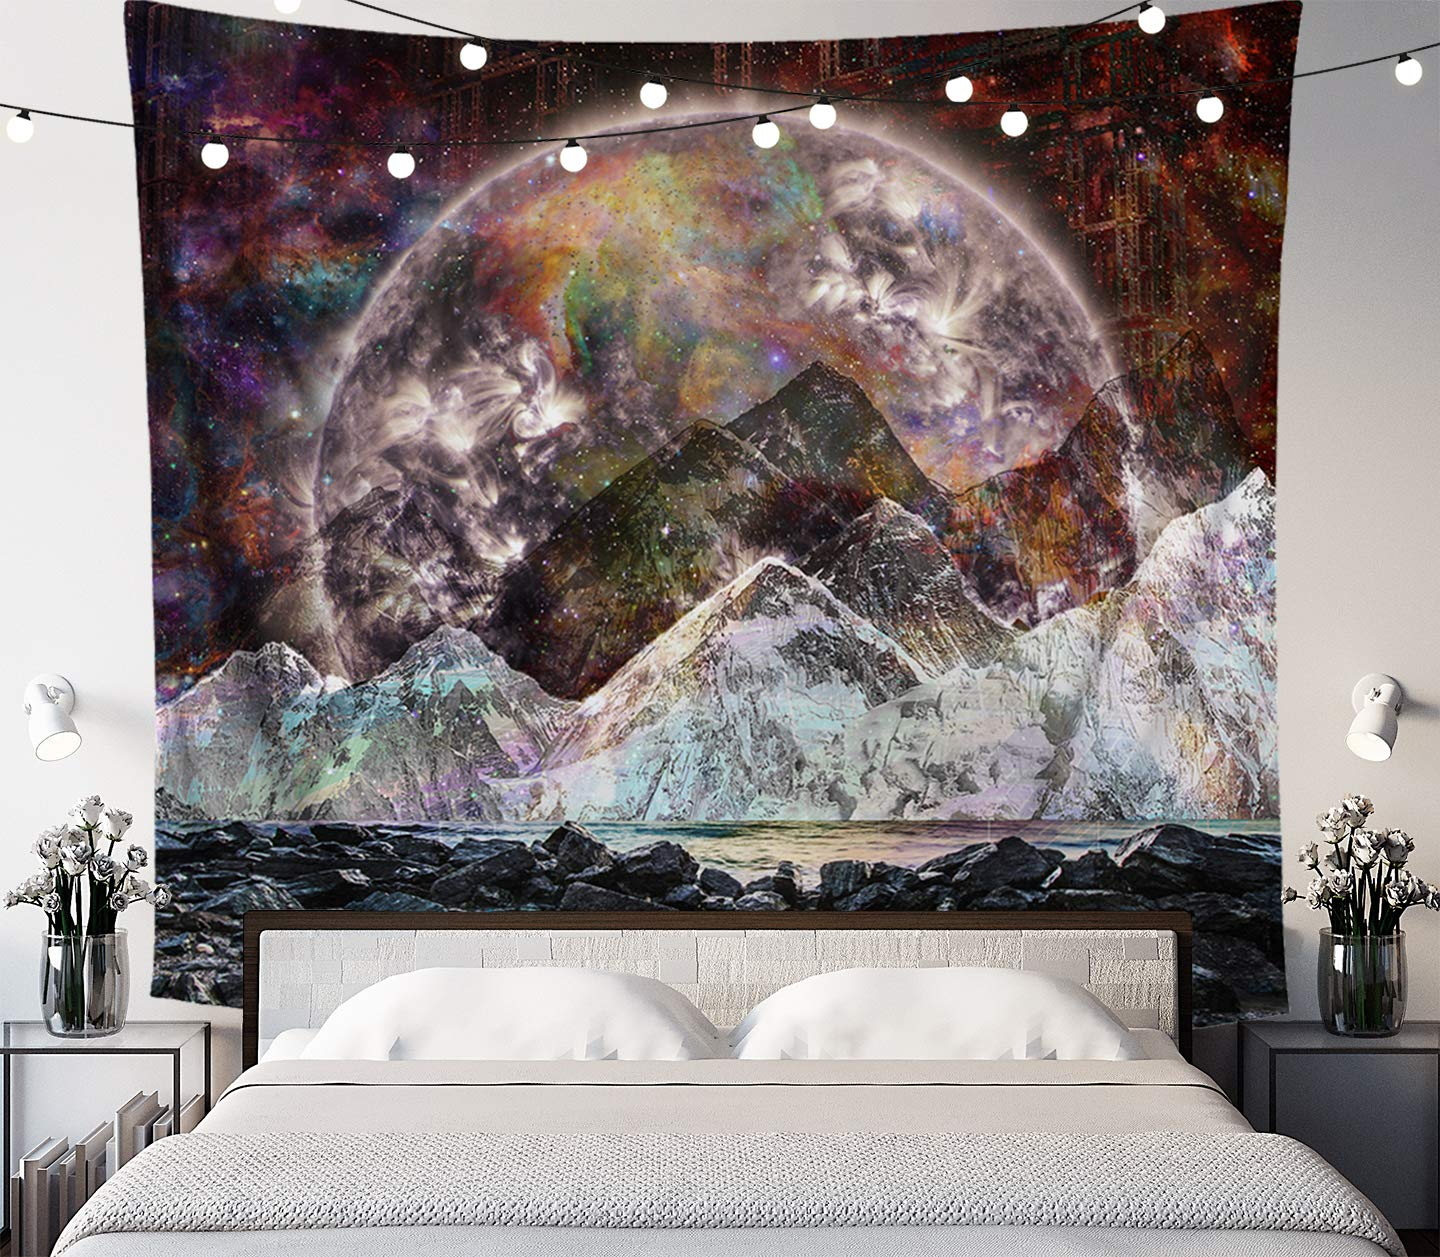 Lucid Eye Studios Cosmic View Moon Tapestry- Galaxy Wall Art- Space Mountain Wall Tapestry- Dark Dorm Room Decor- Psychedelic Wall Hanging- Nature Zodiac Home Decor 84 x 72 inches